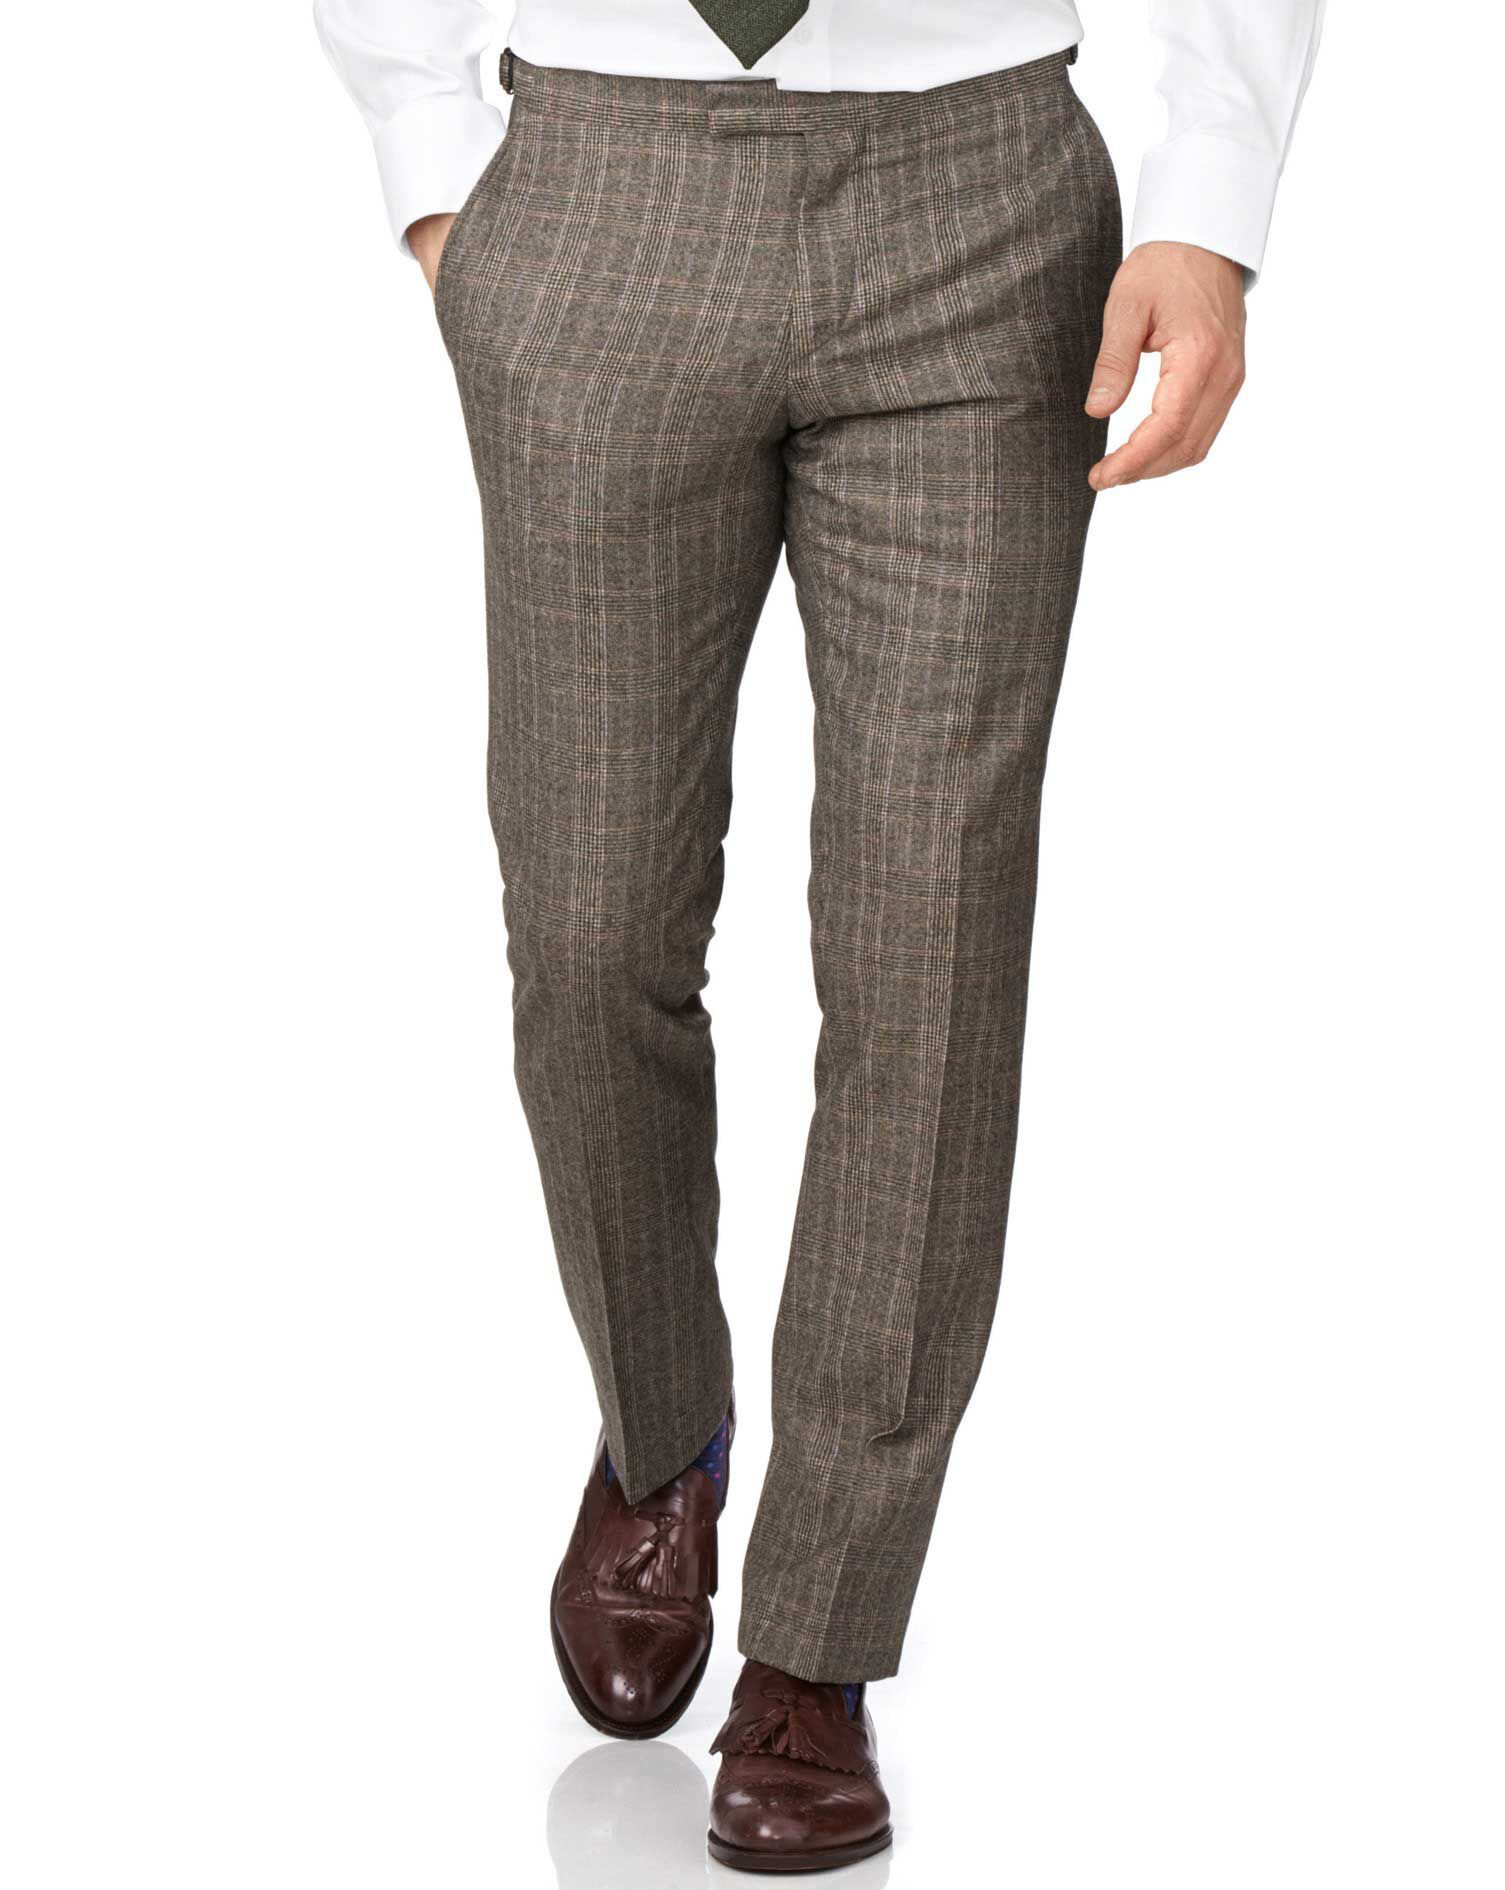 Tan Slim Fit British Check Flannel Luxury Suit Trousers Size W40 L38 by Charles Tyrwhitt